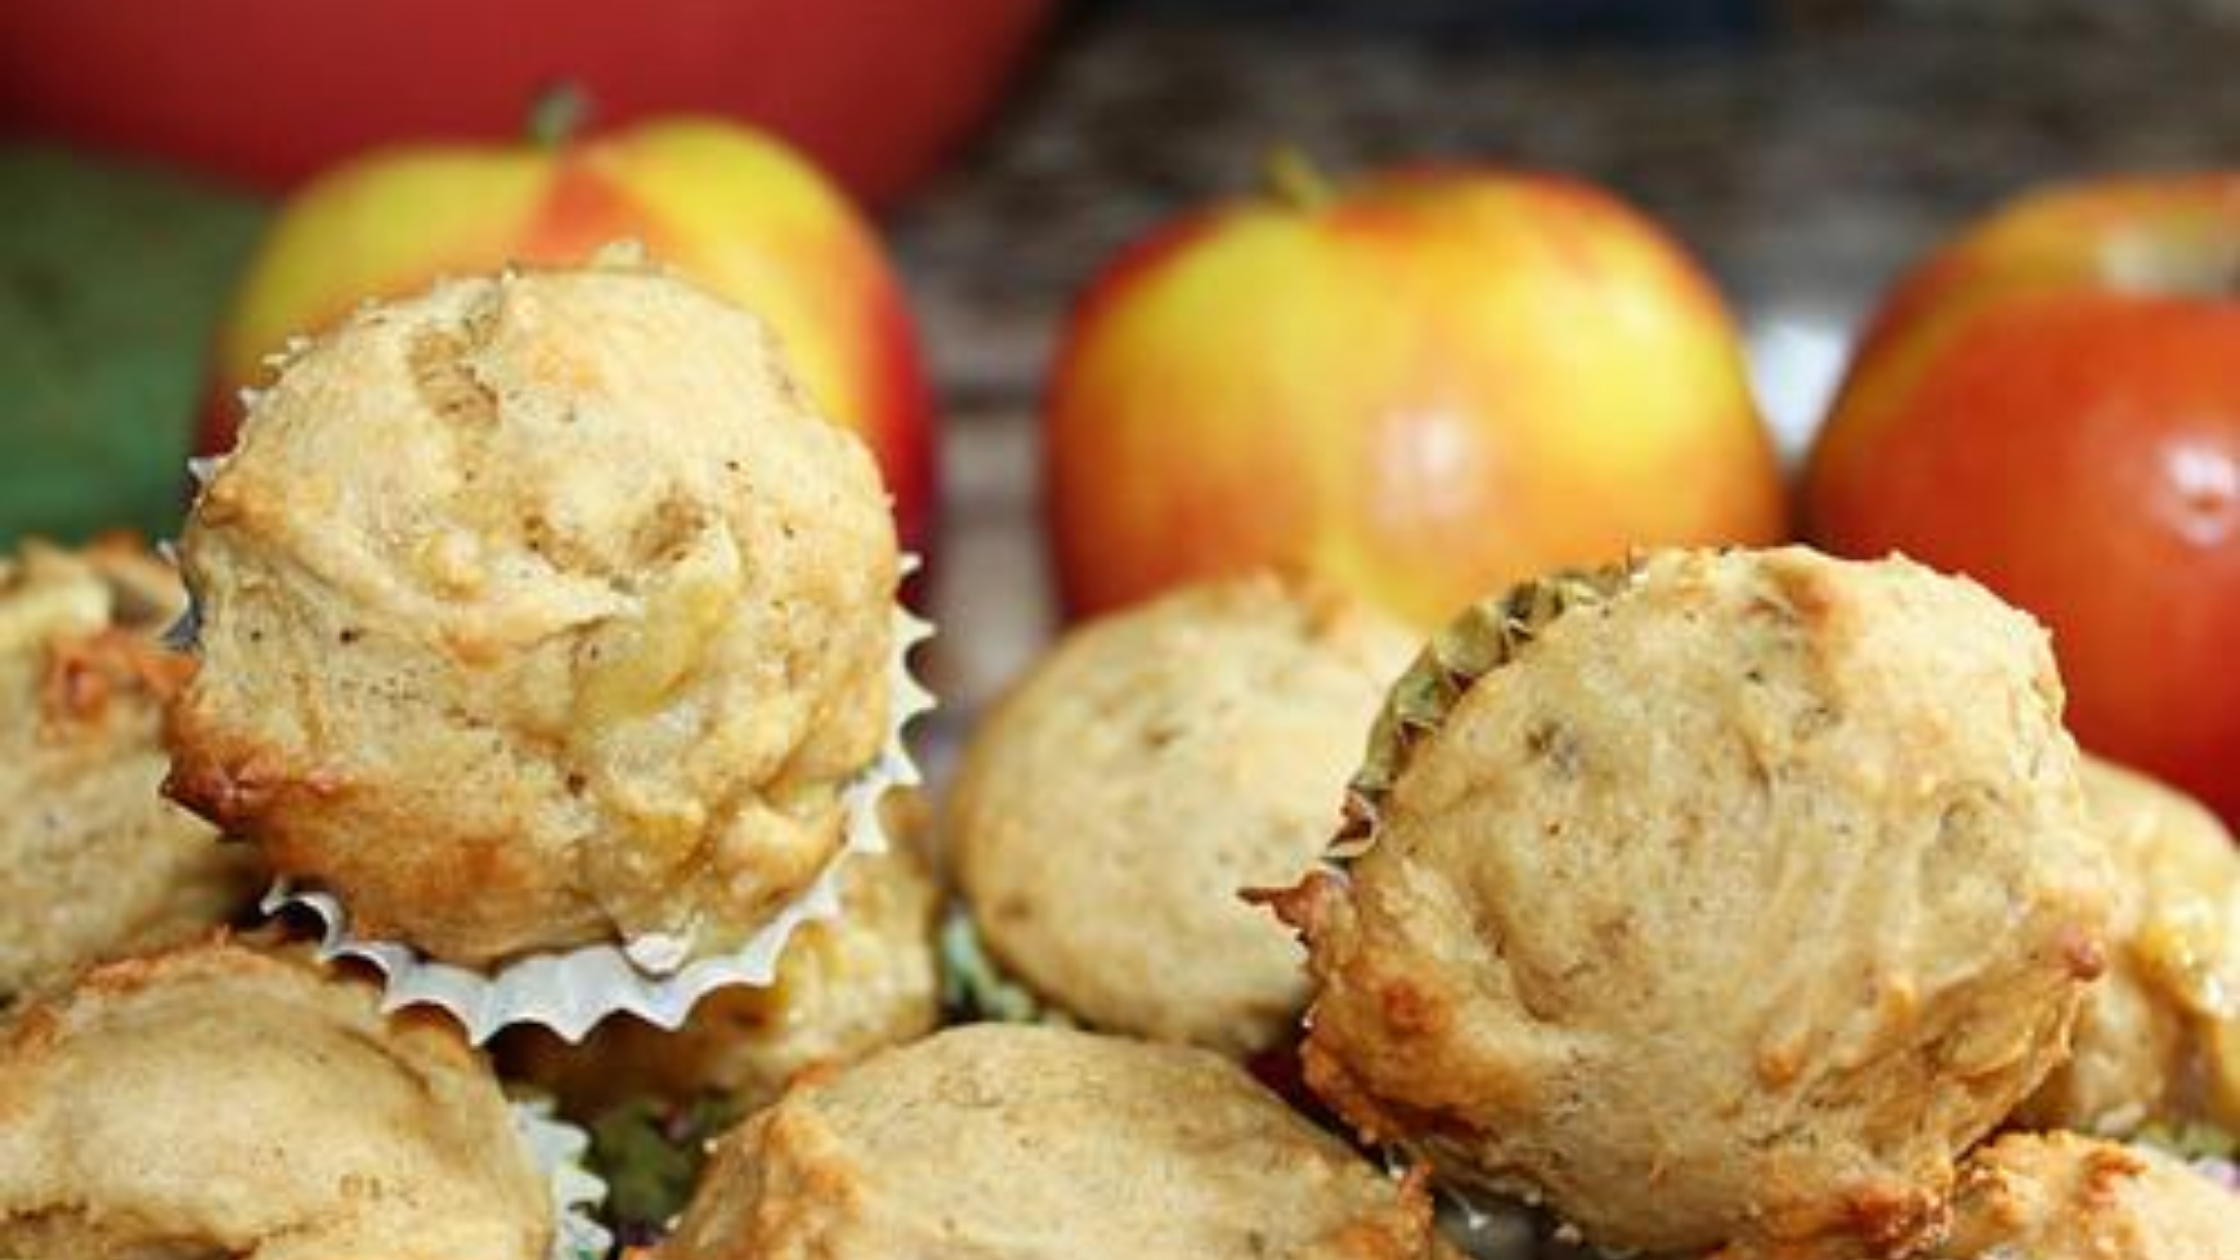 Apple Banana Muffins for an After School Snack